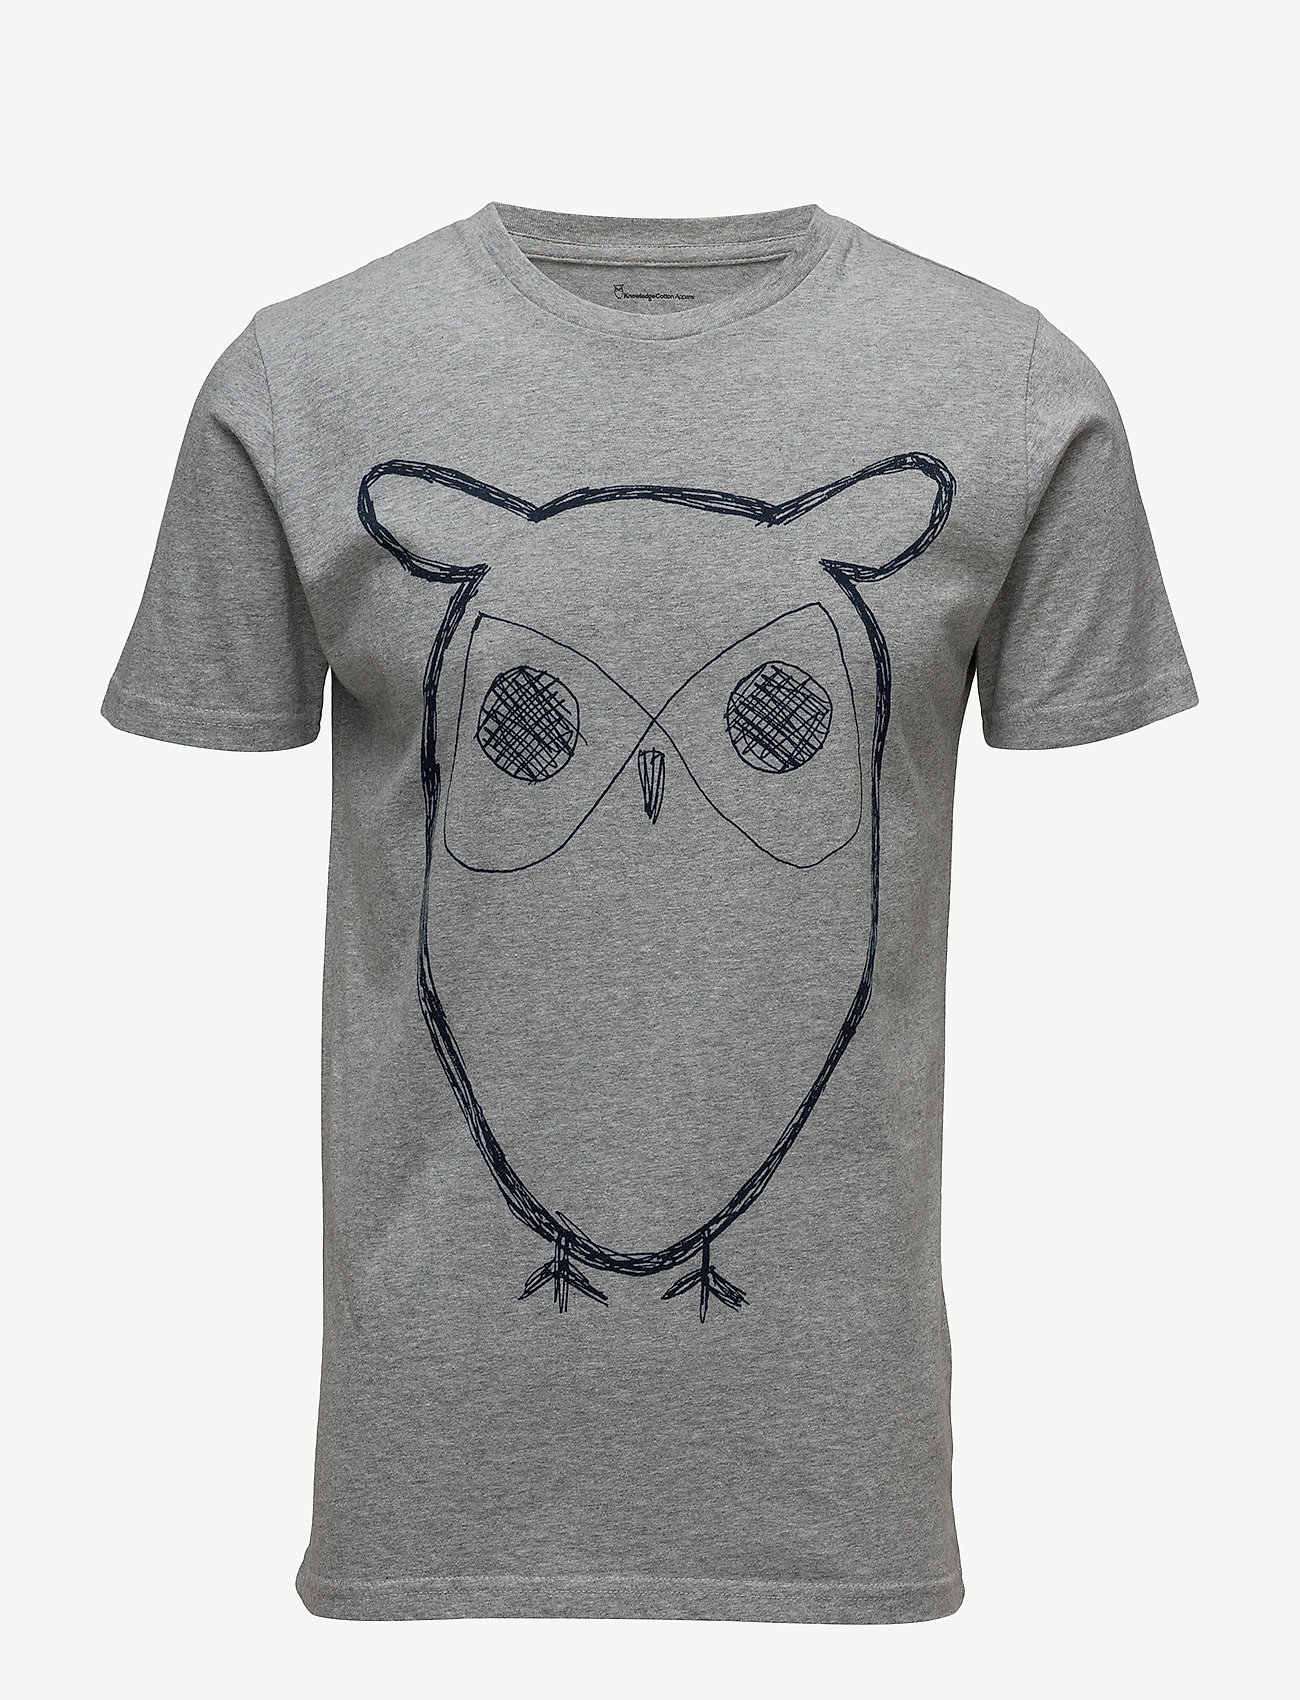 Knowledge Cotton Apparel - ALDER big owl tee - GOTS/Vegan - krótki rękaw - grey melange